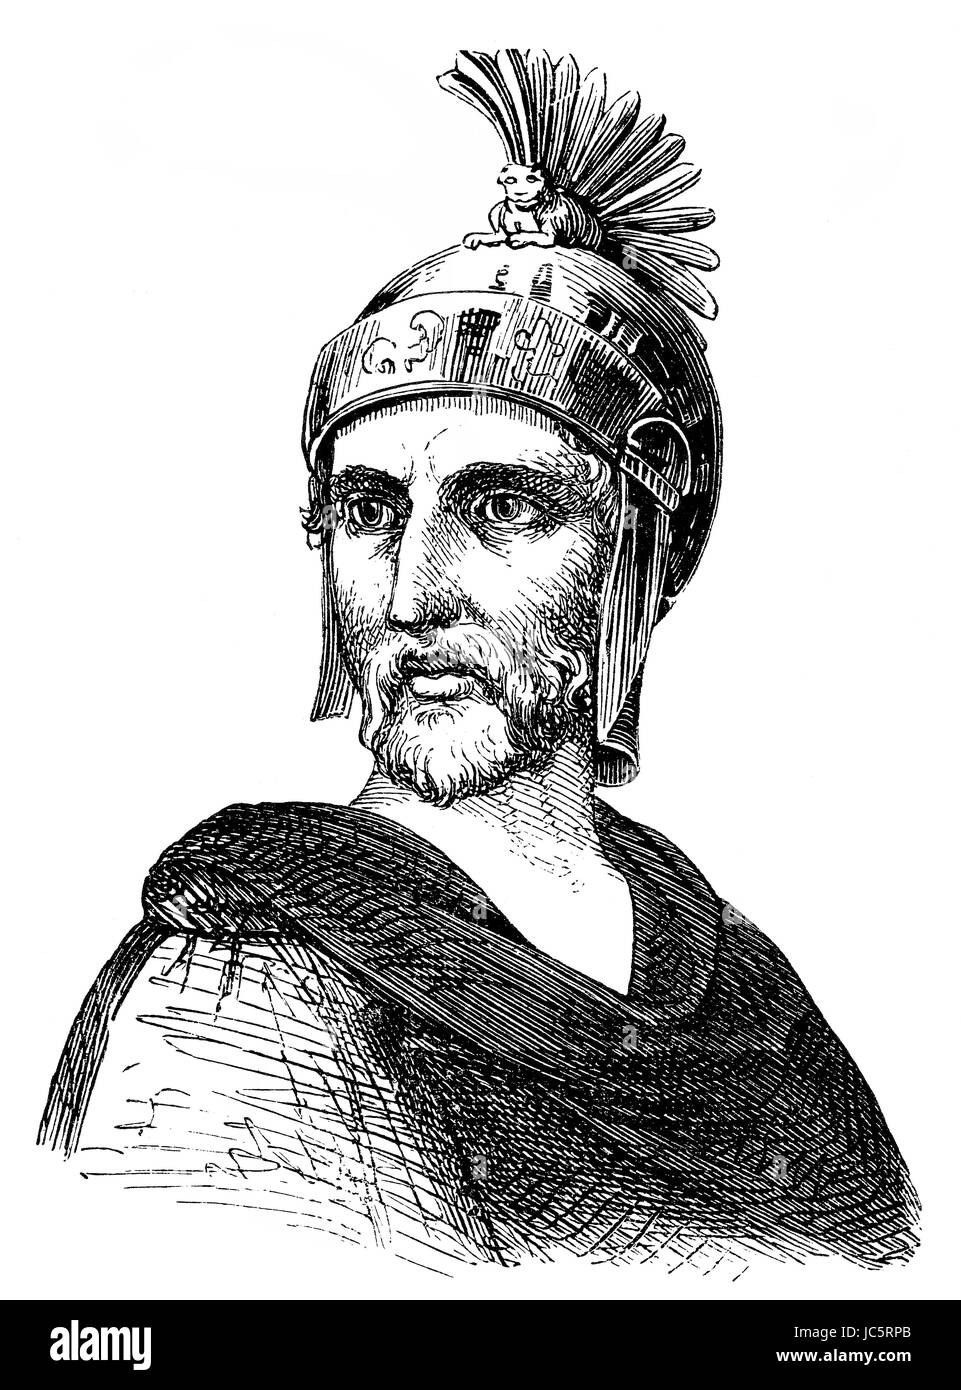 Philopoemen, 253 BC-183 BC,a Greek general and statesman - Stock Image